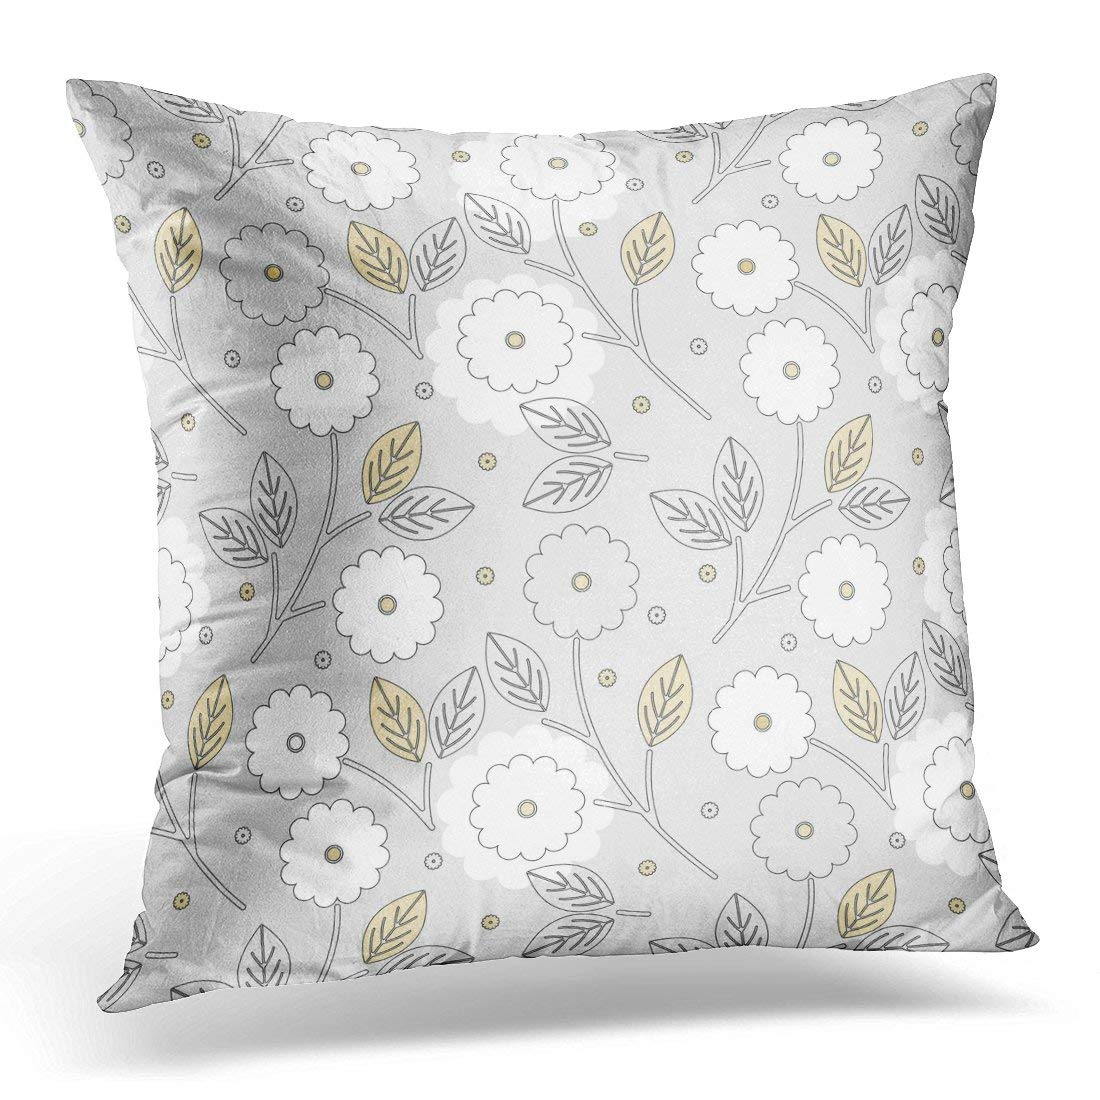 CMFUN Colorful Abstract Beautiful with Flowers and Leaves Kids Pattern Fills and More Creative Designs White Pillow Case Pillow Cover 20x20 inch